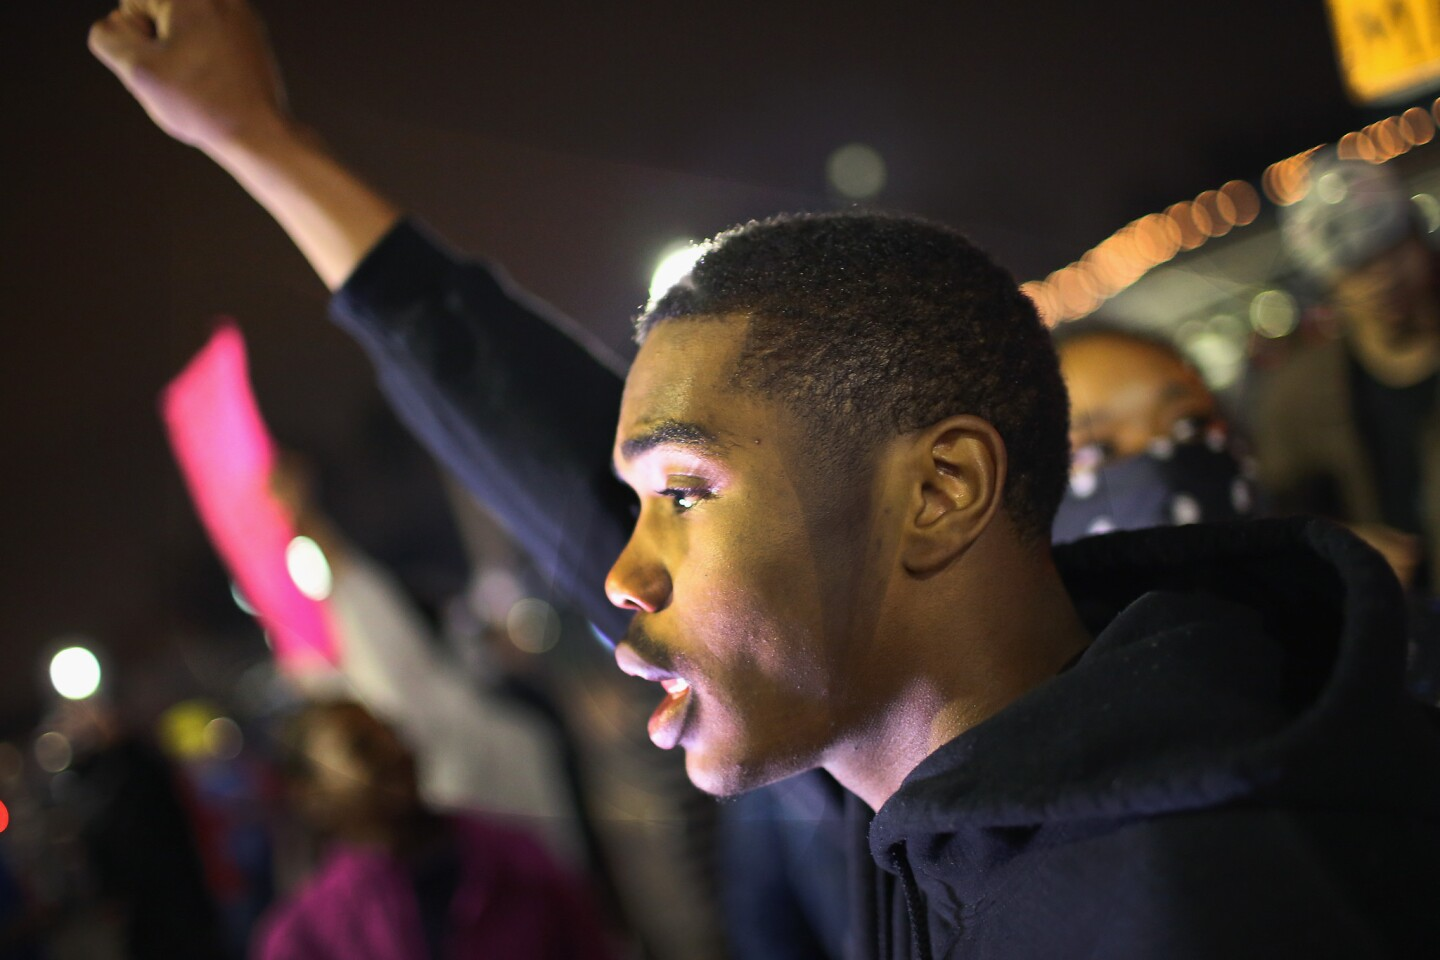 Demonstrators protest in front of the police station in Ferguson, Mo.